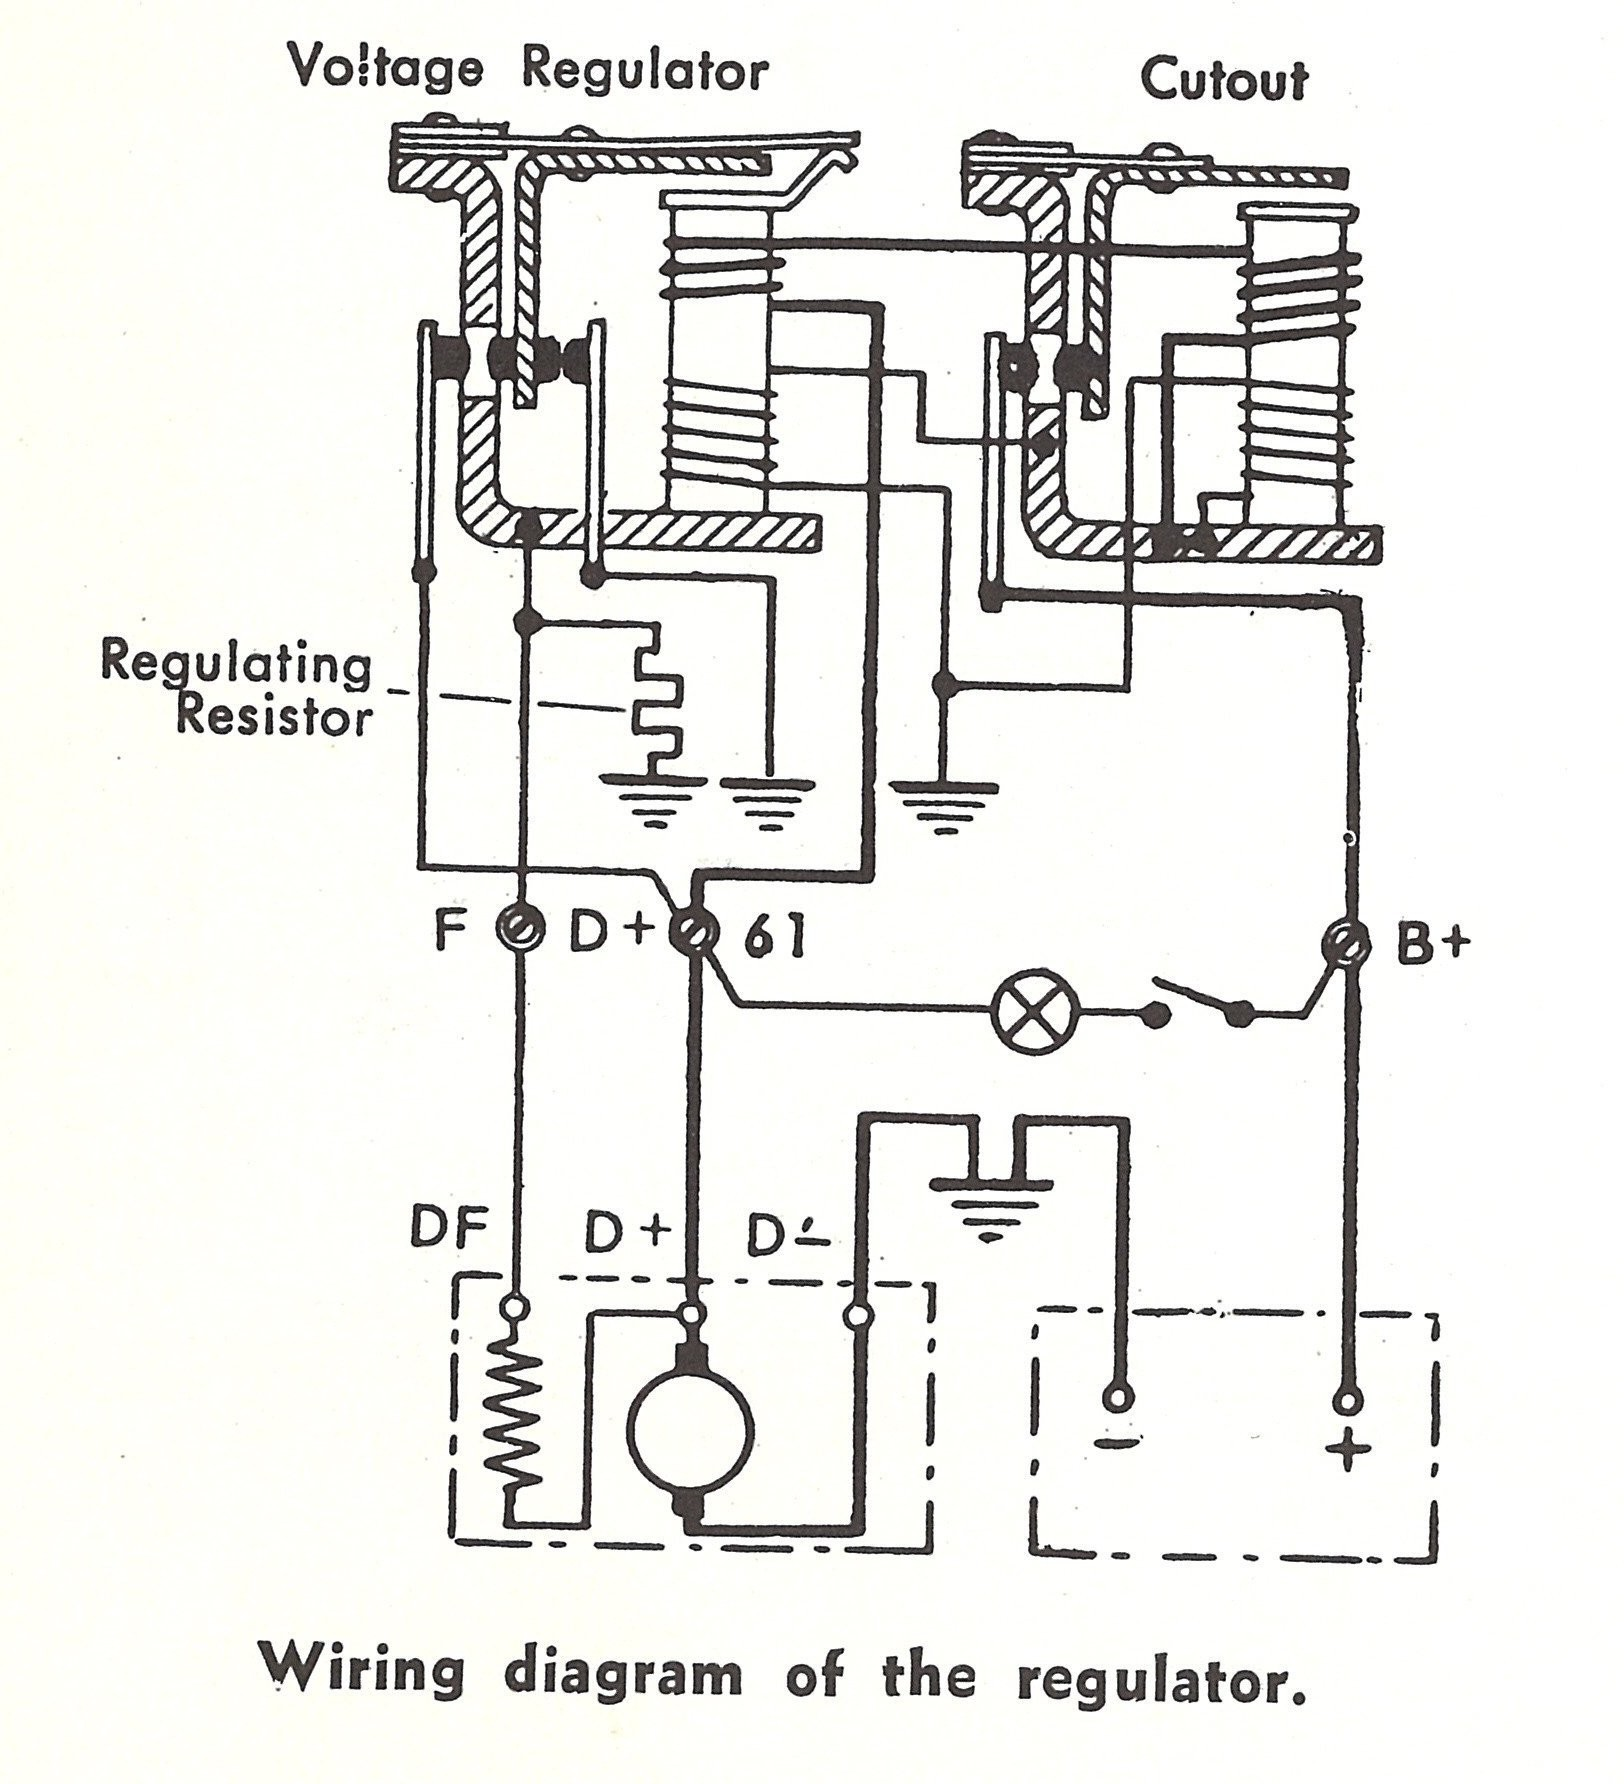 Kohler Voltage Regulator Wiring Diagram Free For You Engine Electrical 20 Hp Rectifier Library Rh 80 Akszer Eu Command